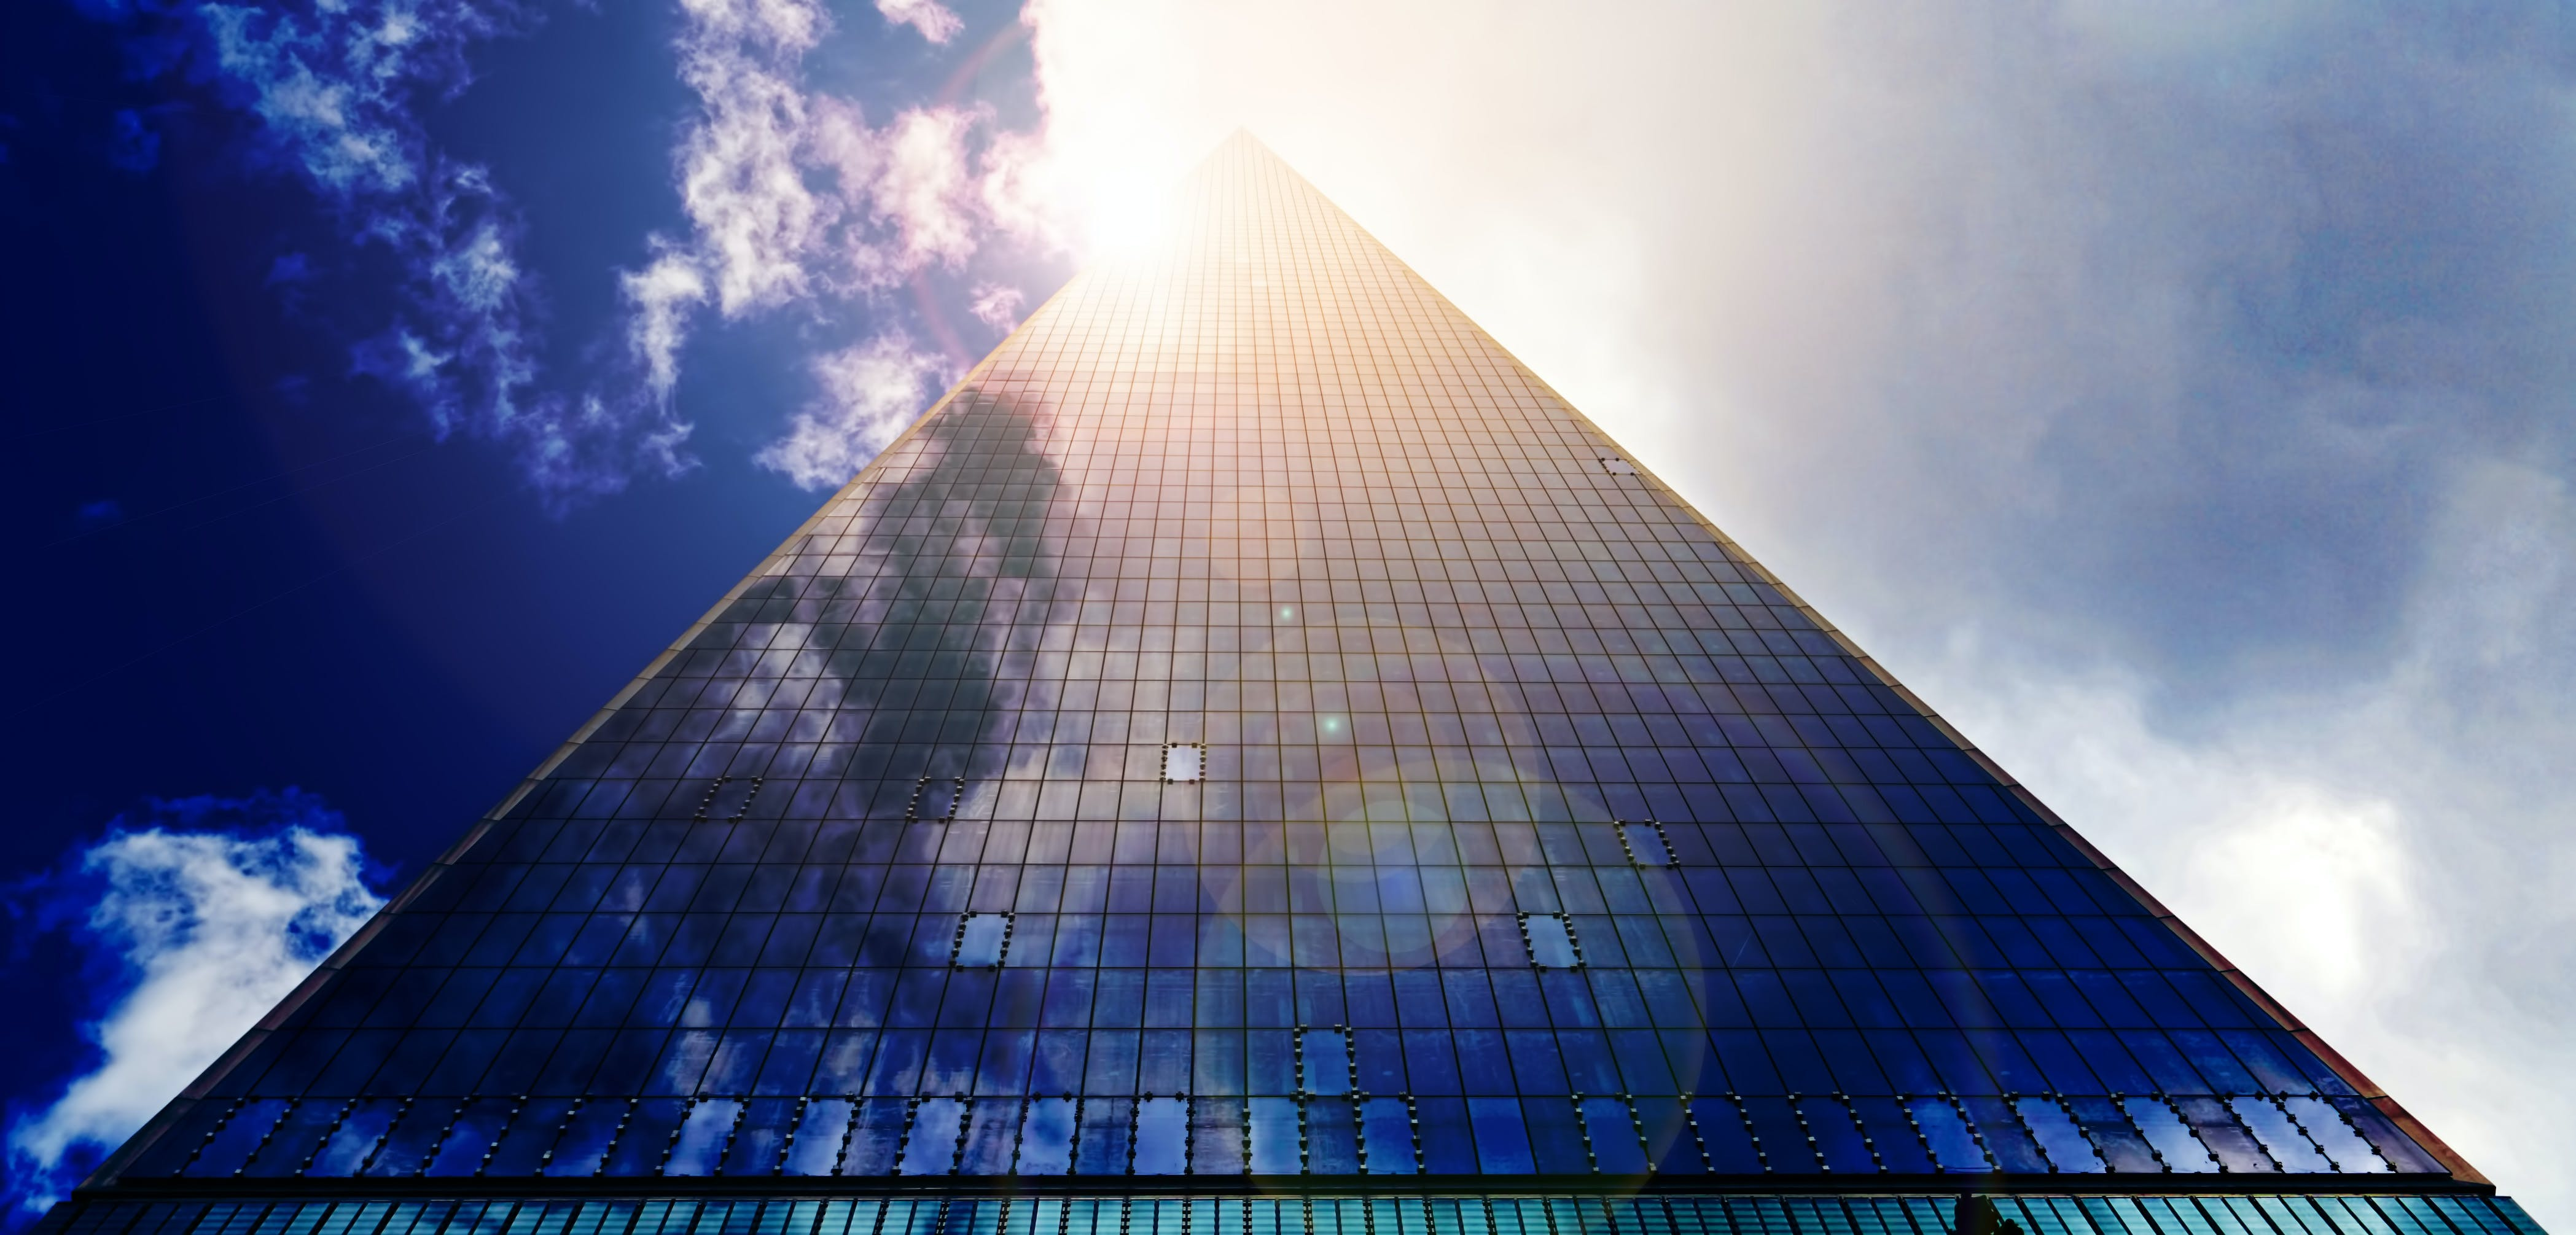 Low Angle Photograph of Pyramid Glass during Calm Weather